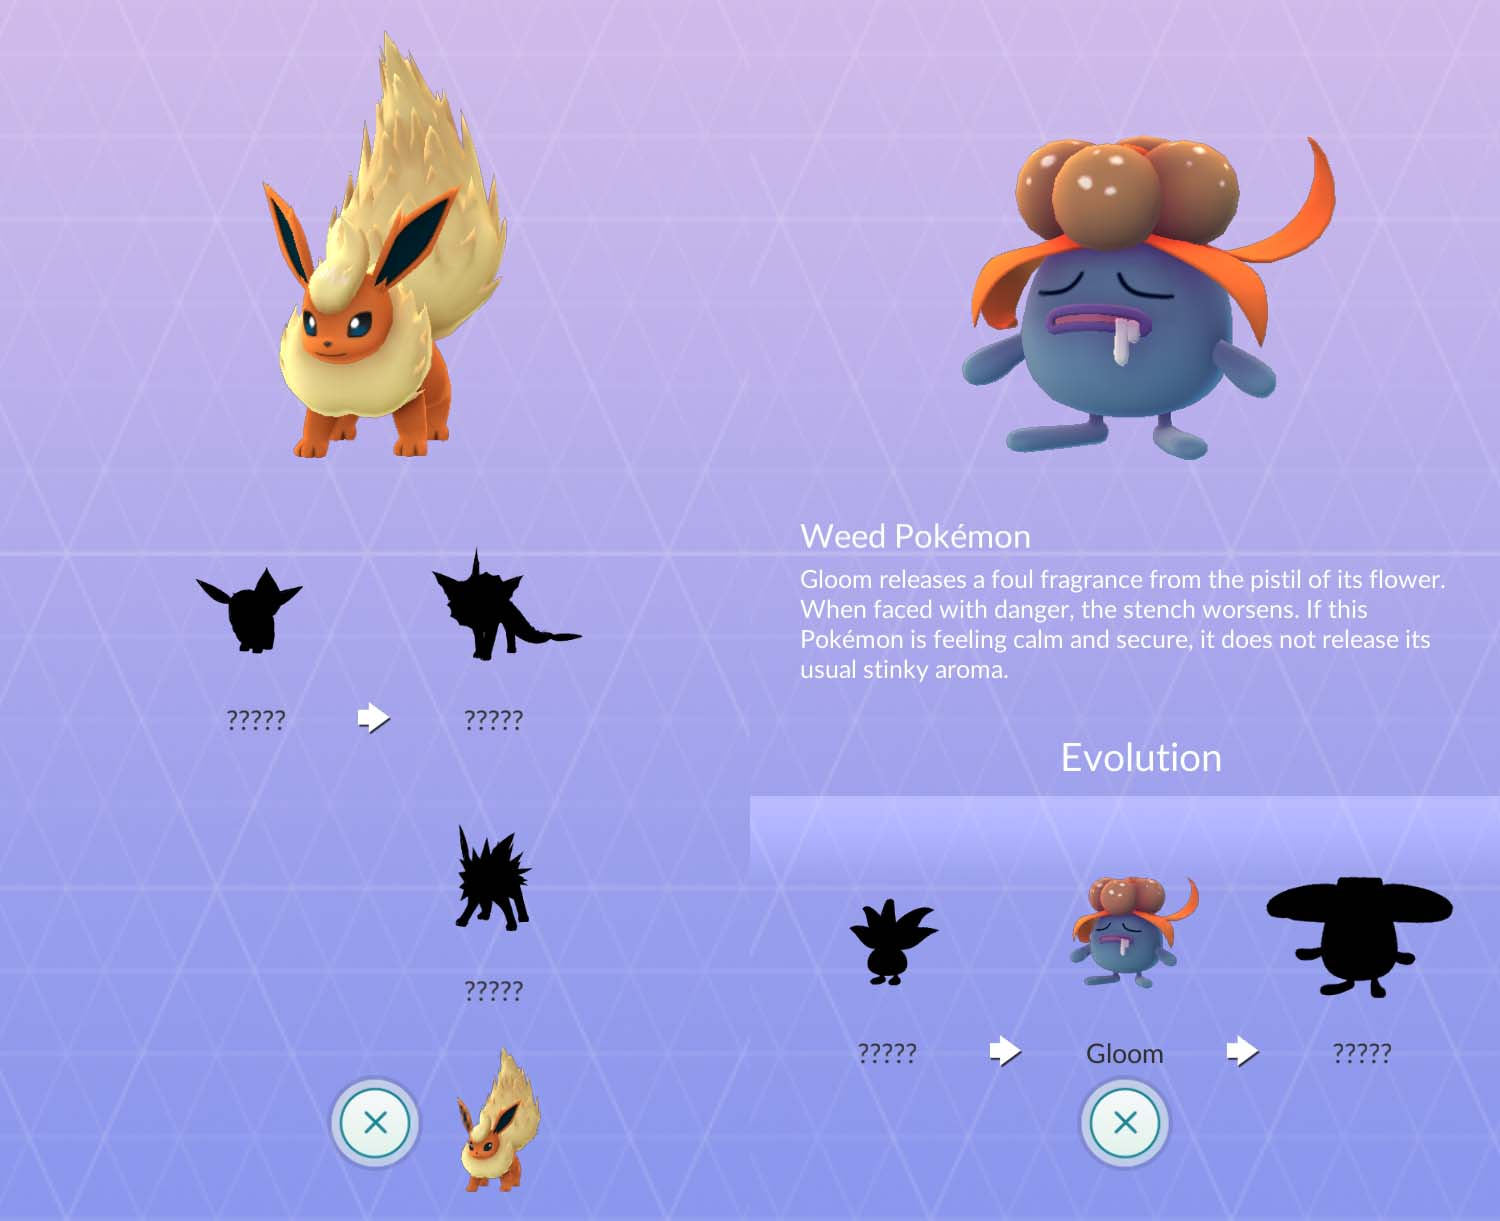 Catching Pokémon evolved forms before the first forms